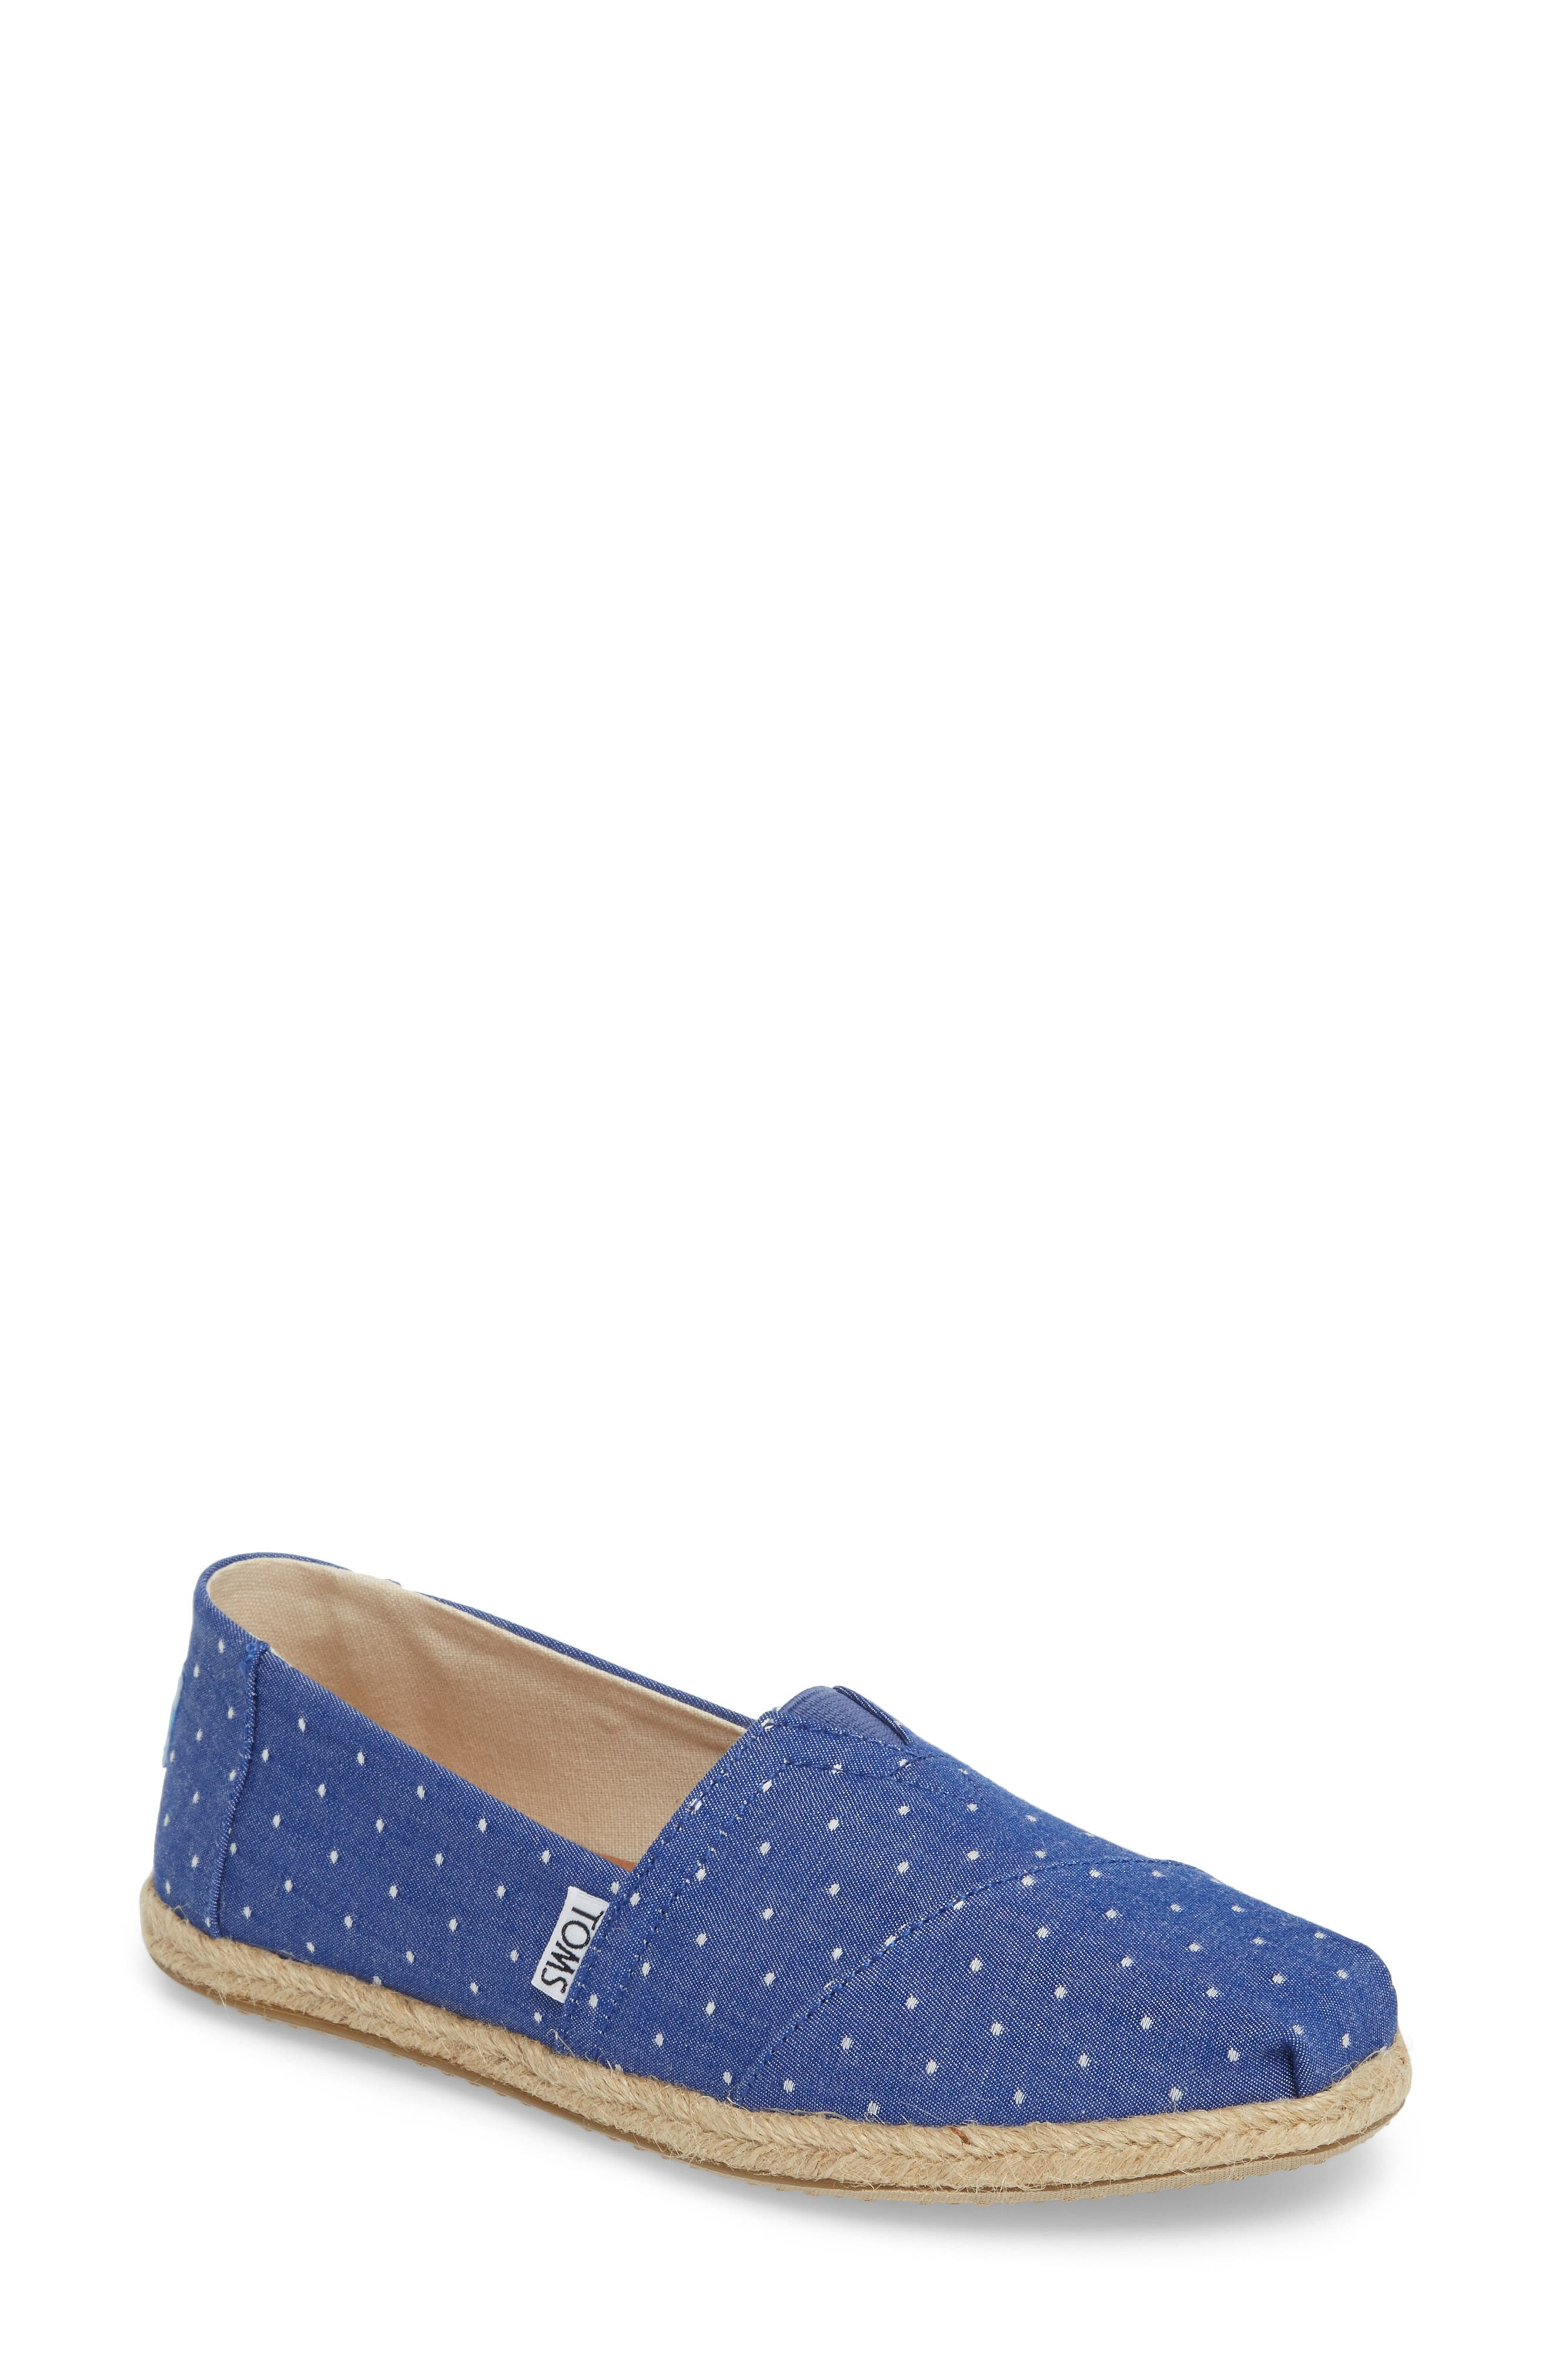 Deconstructed Alpargata Slip-On,                             Main thumbnail 1, color,                             Blue Dot Fabric